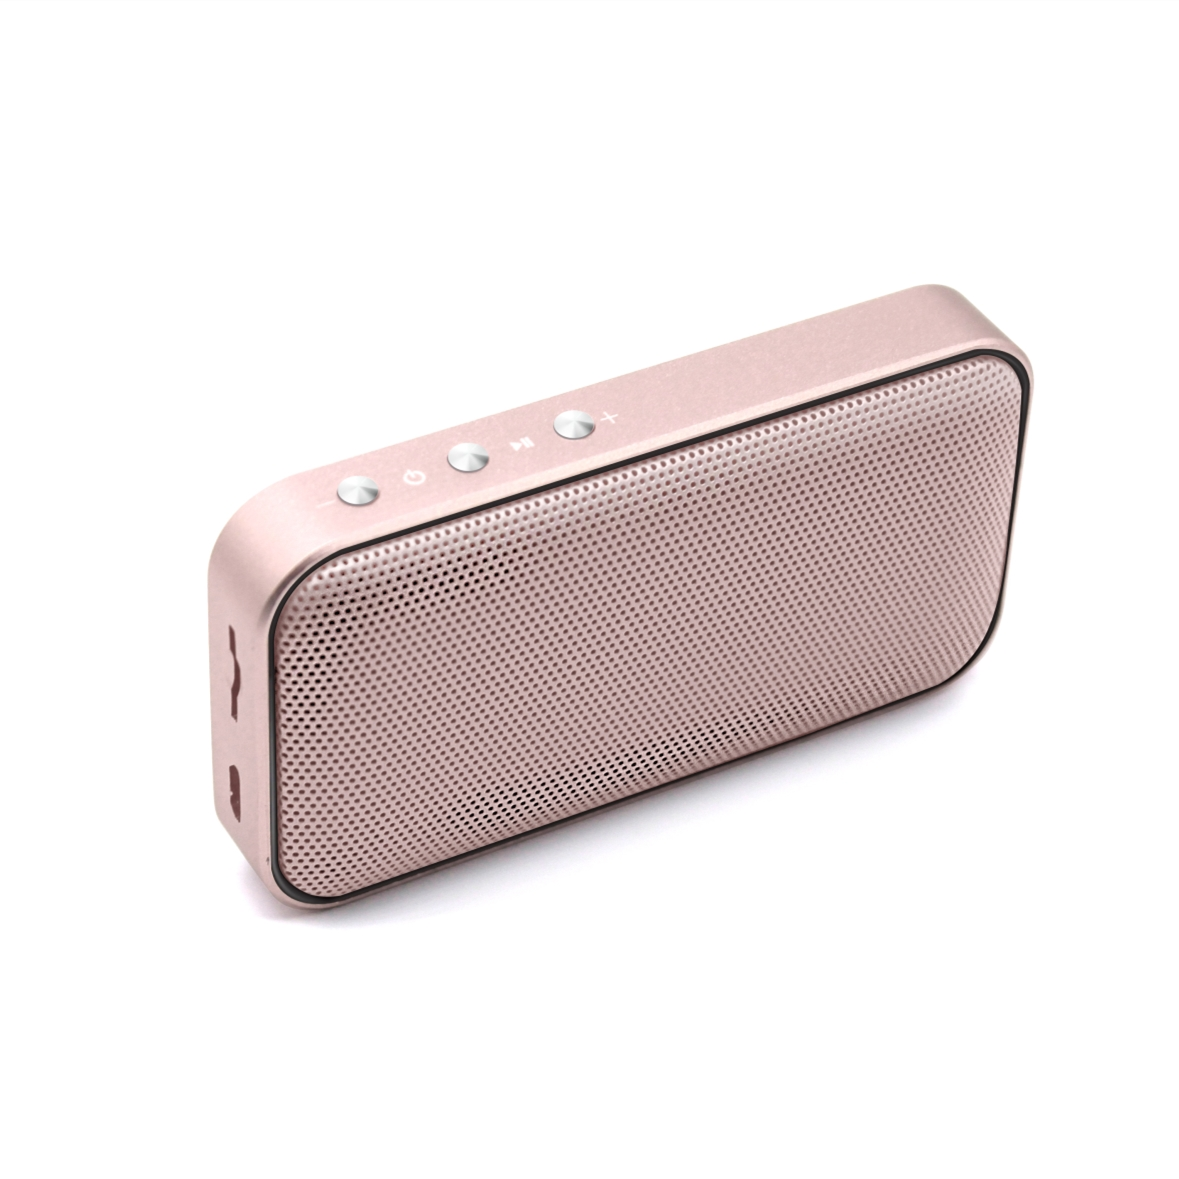 China wholesale Slim Design super bass Bluetooth speaker manufacturers​